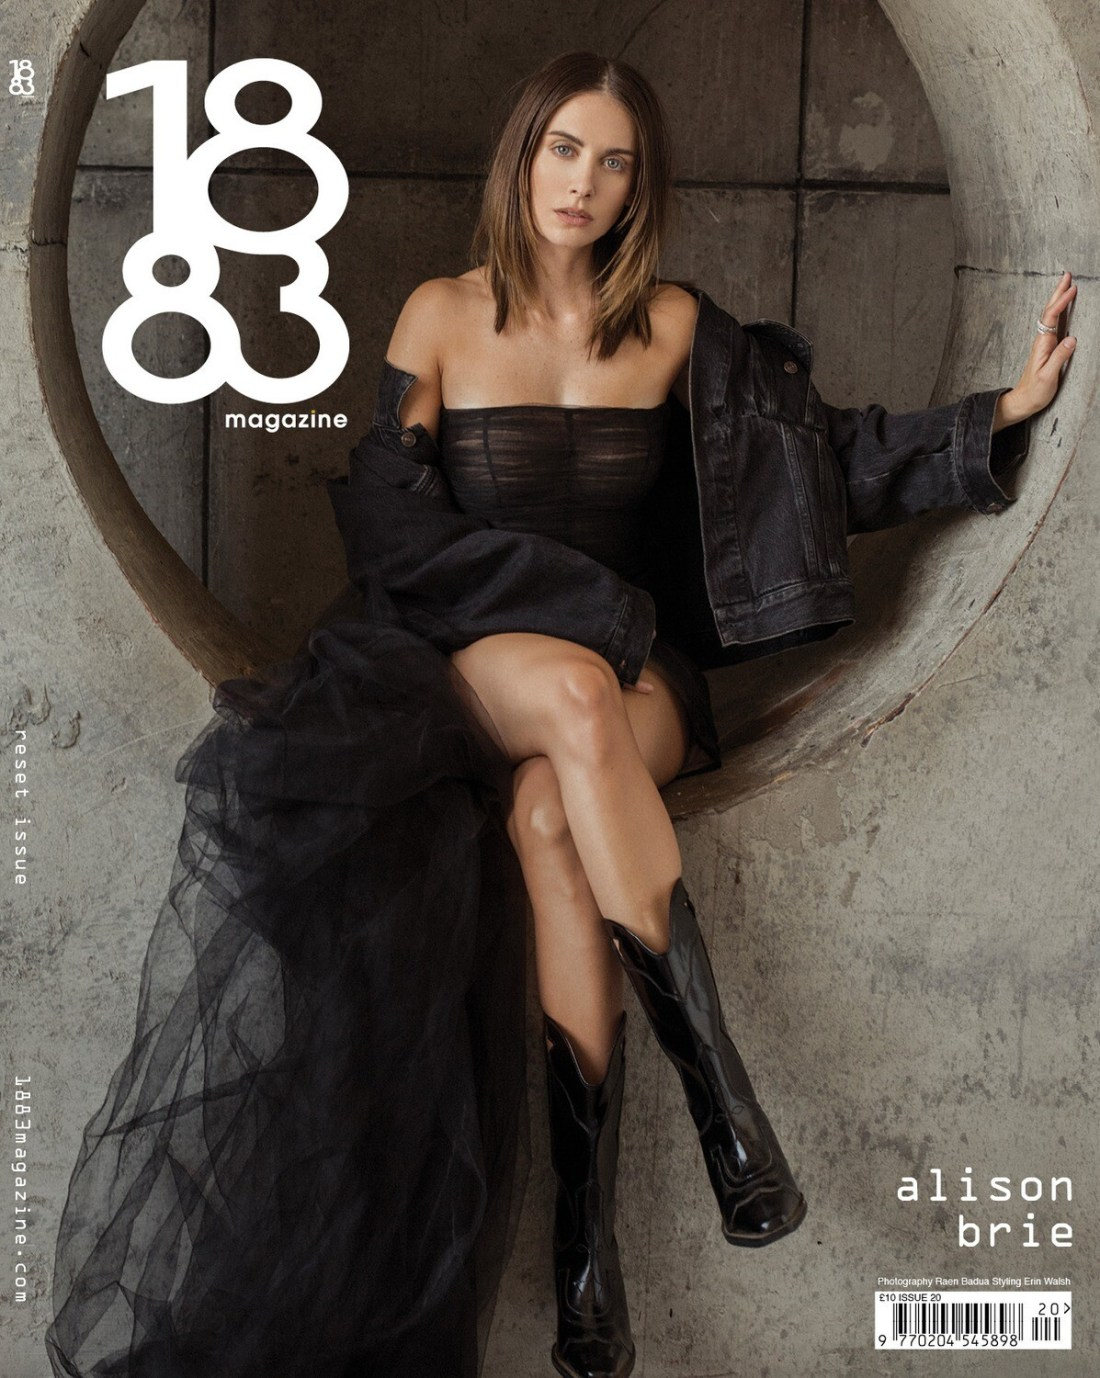 1883 Magazine Reset Issue Alison Brie